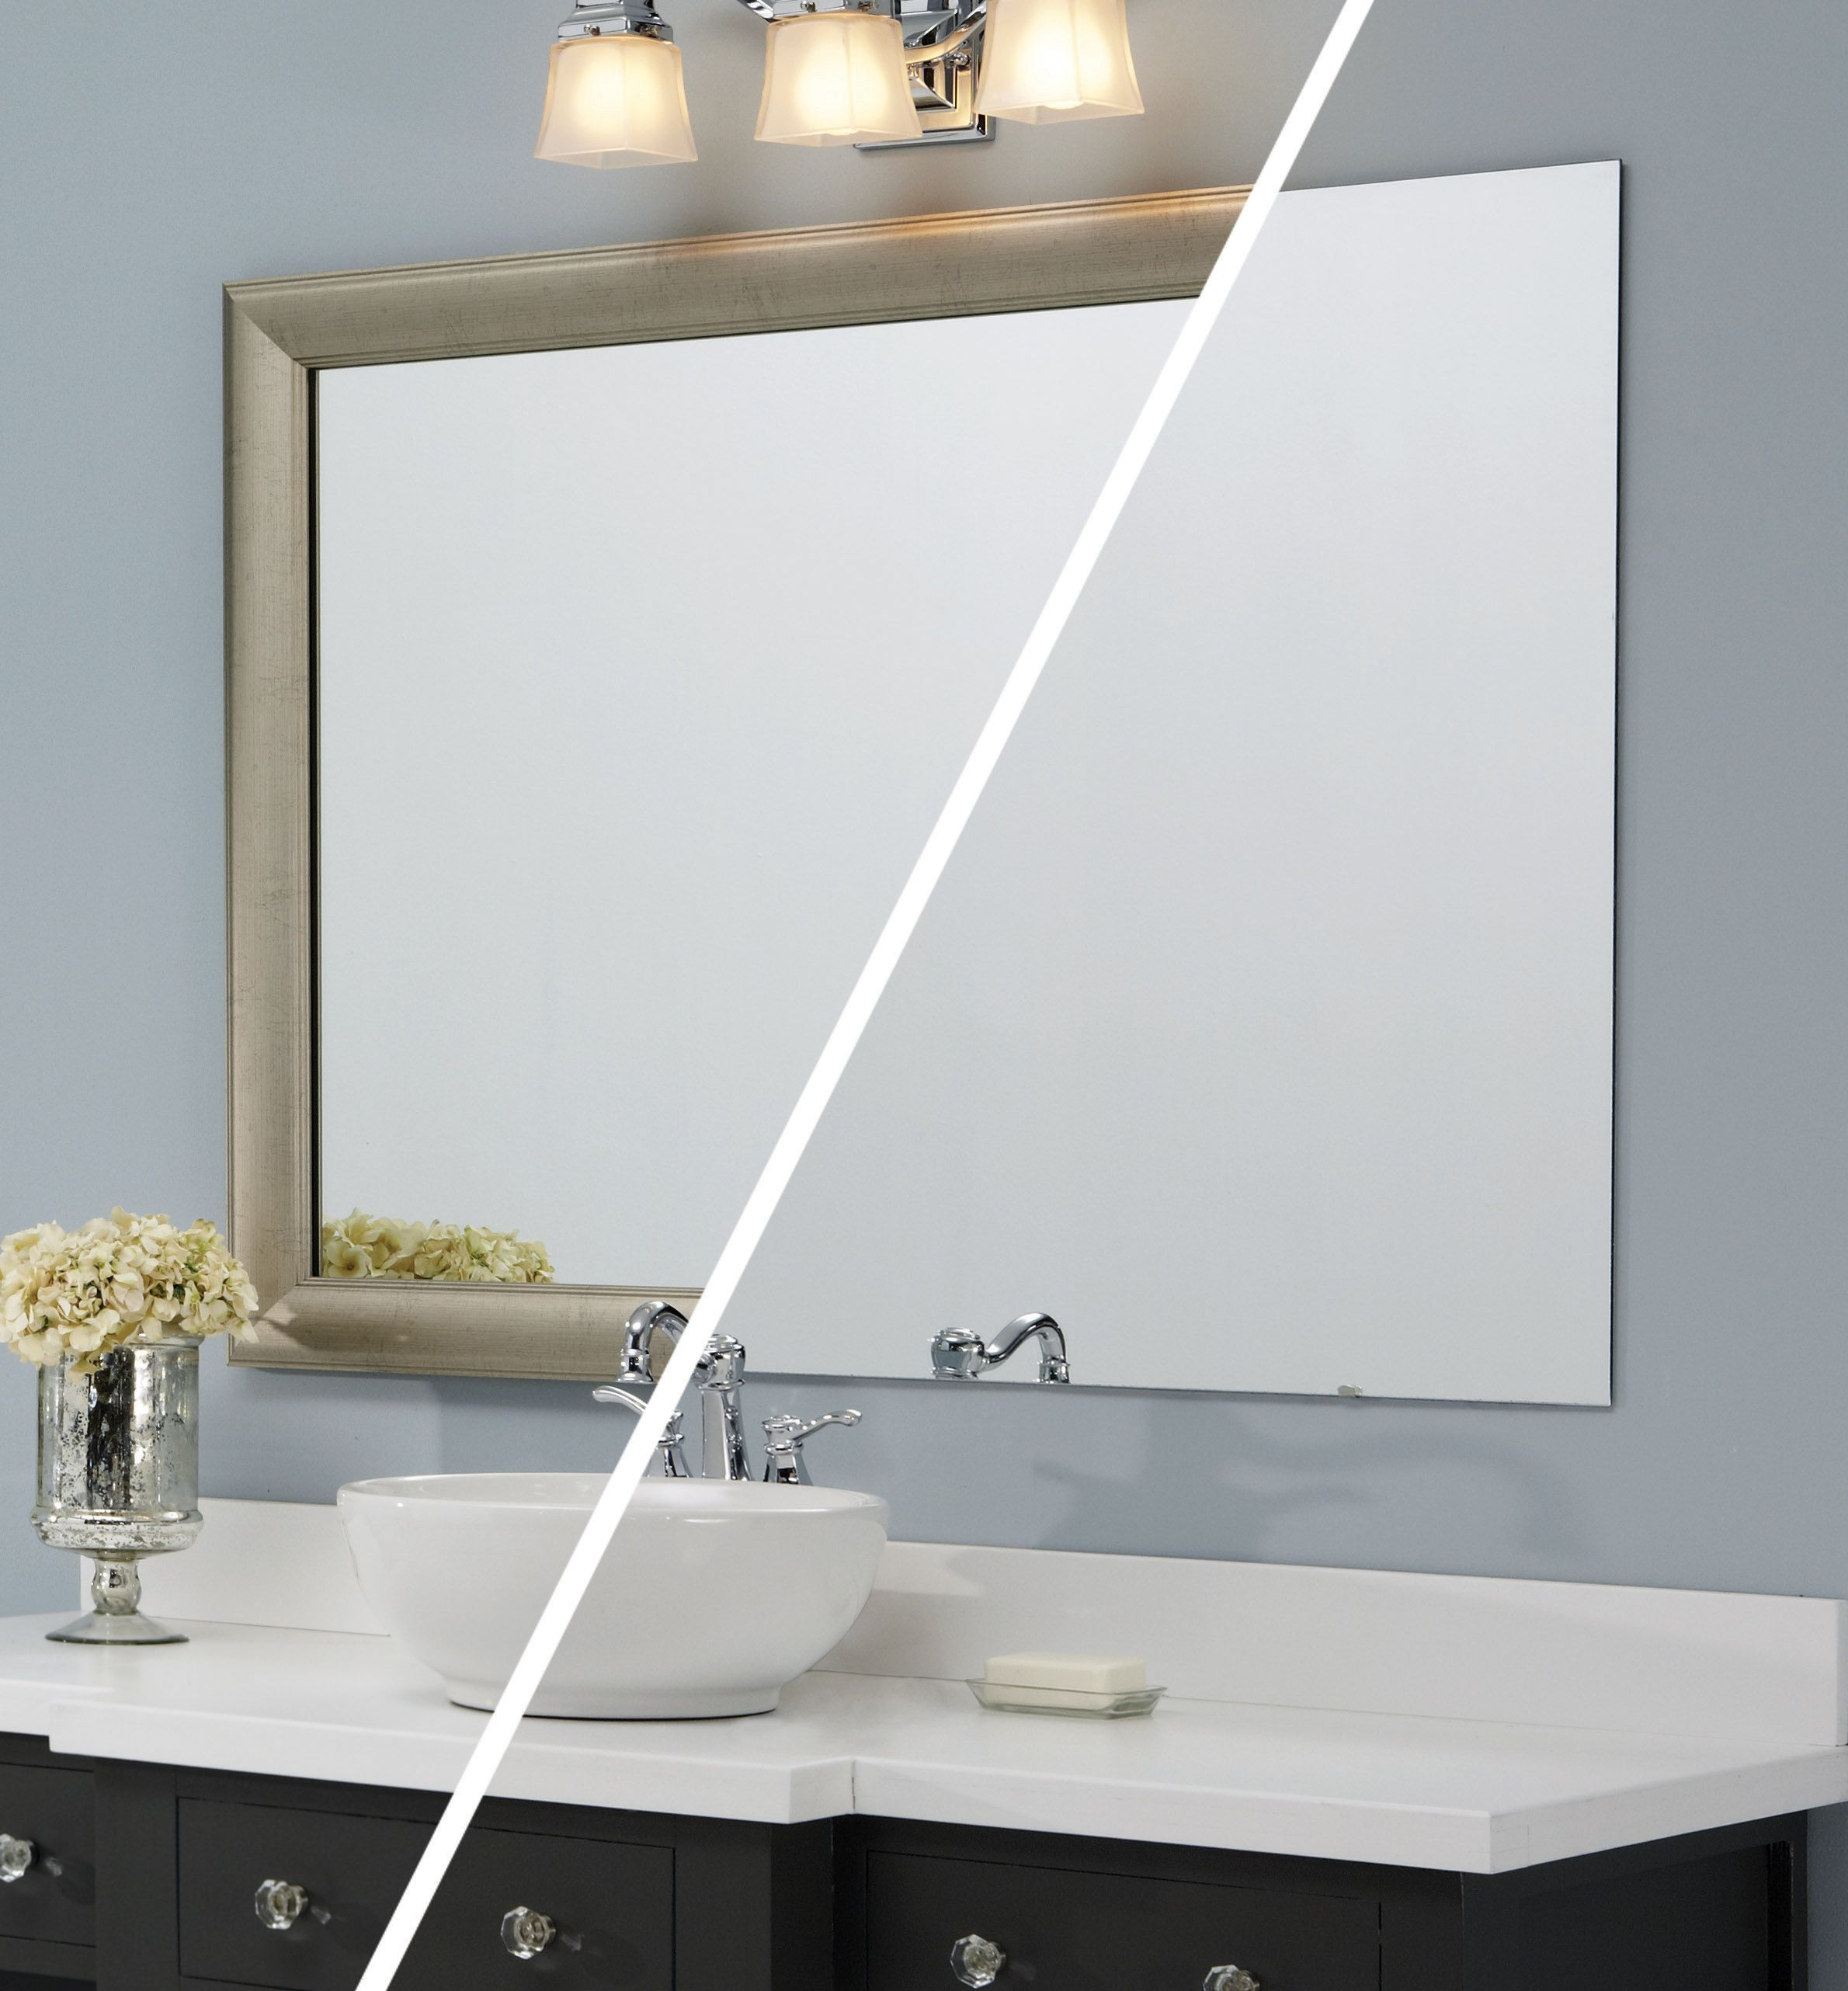 A frame was added directly to the plate glass mirror while on the ...